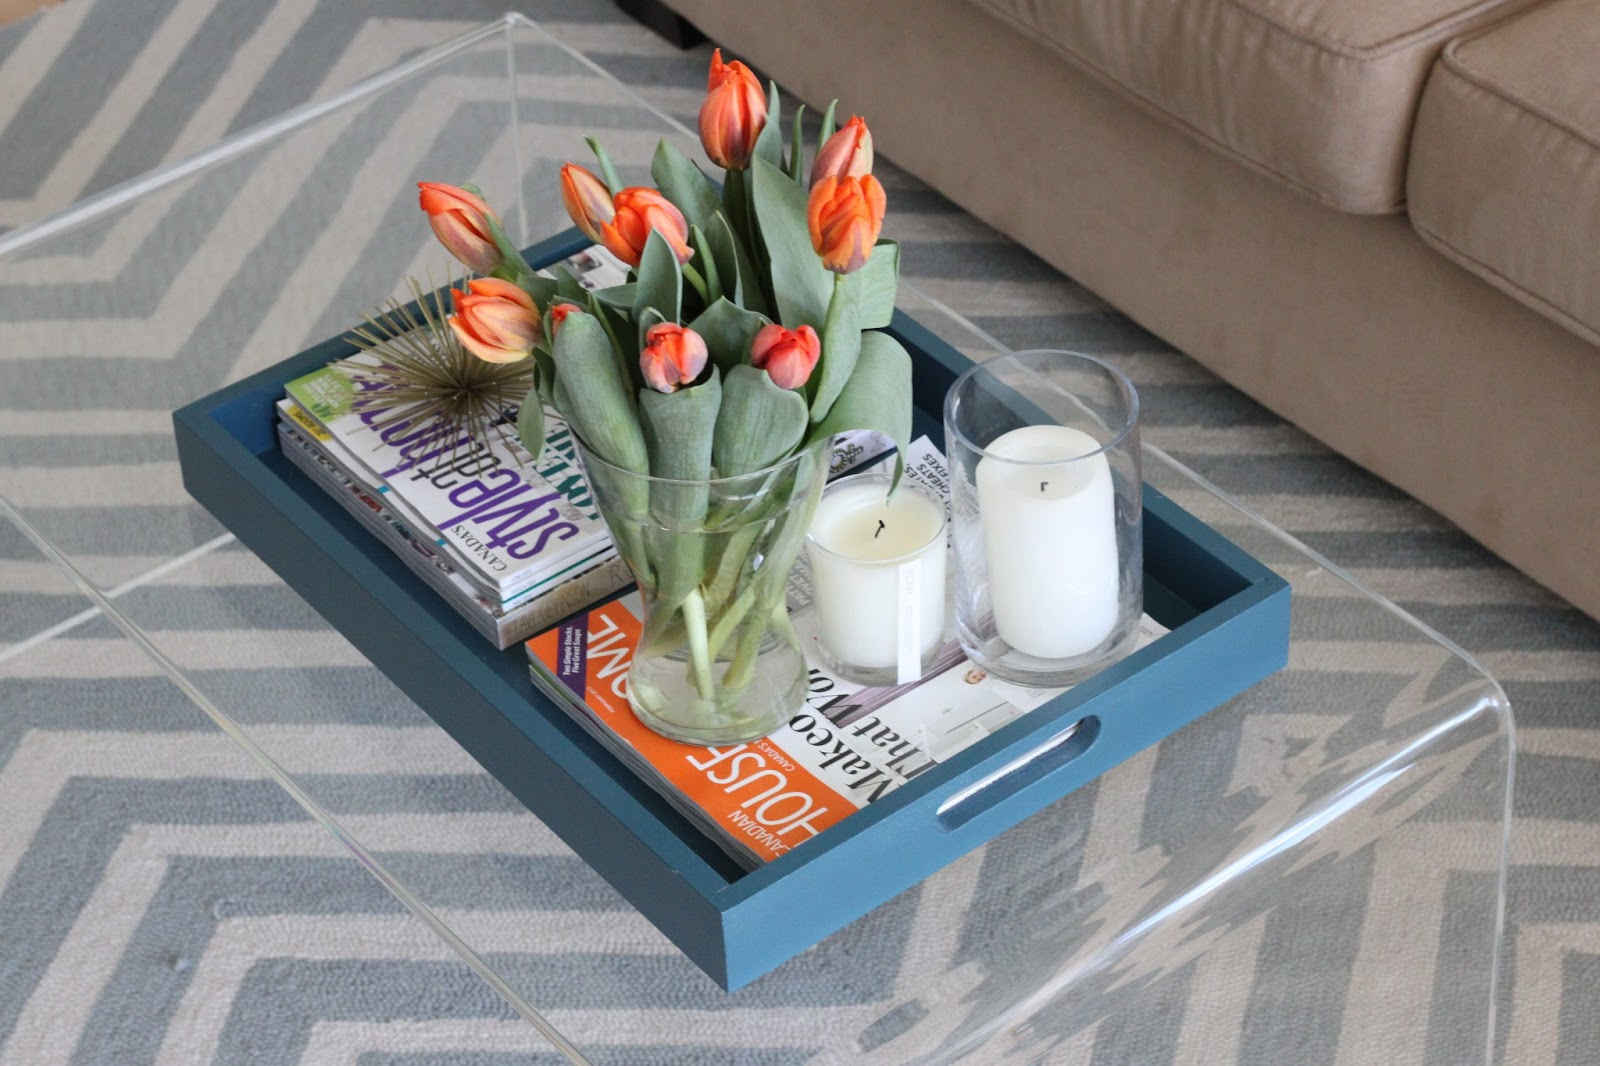 Iu0027ve Been Dying For A New Coffee Table For A While Now. The One Weu0027ve Had  Was Bought At A Thrift Store And I Gave It A Makeover With A ...